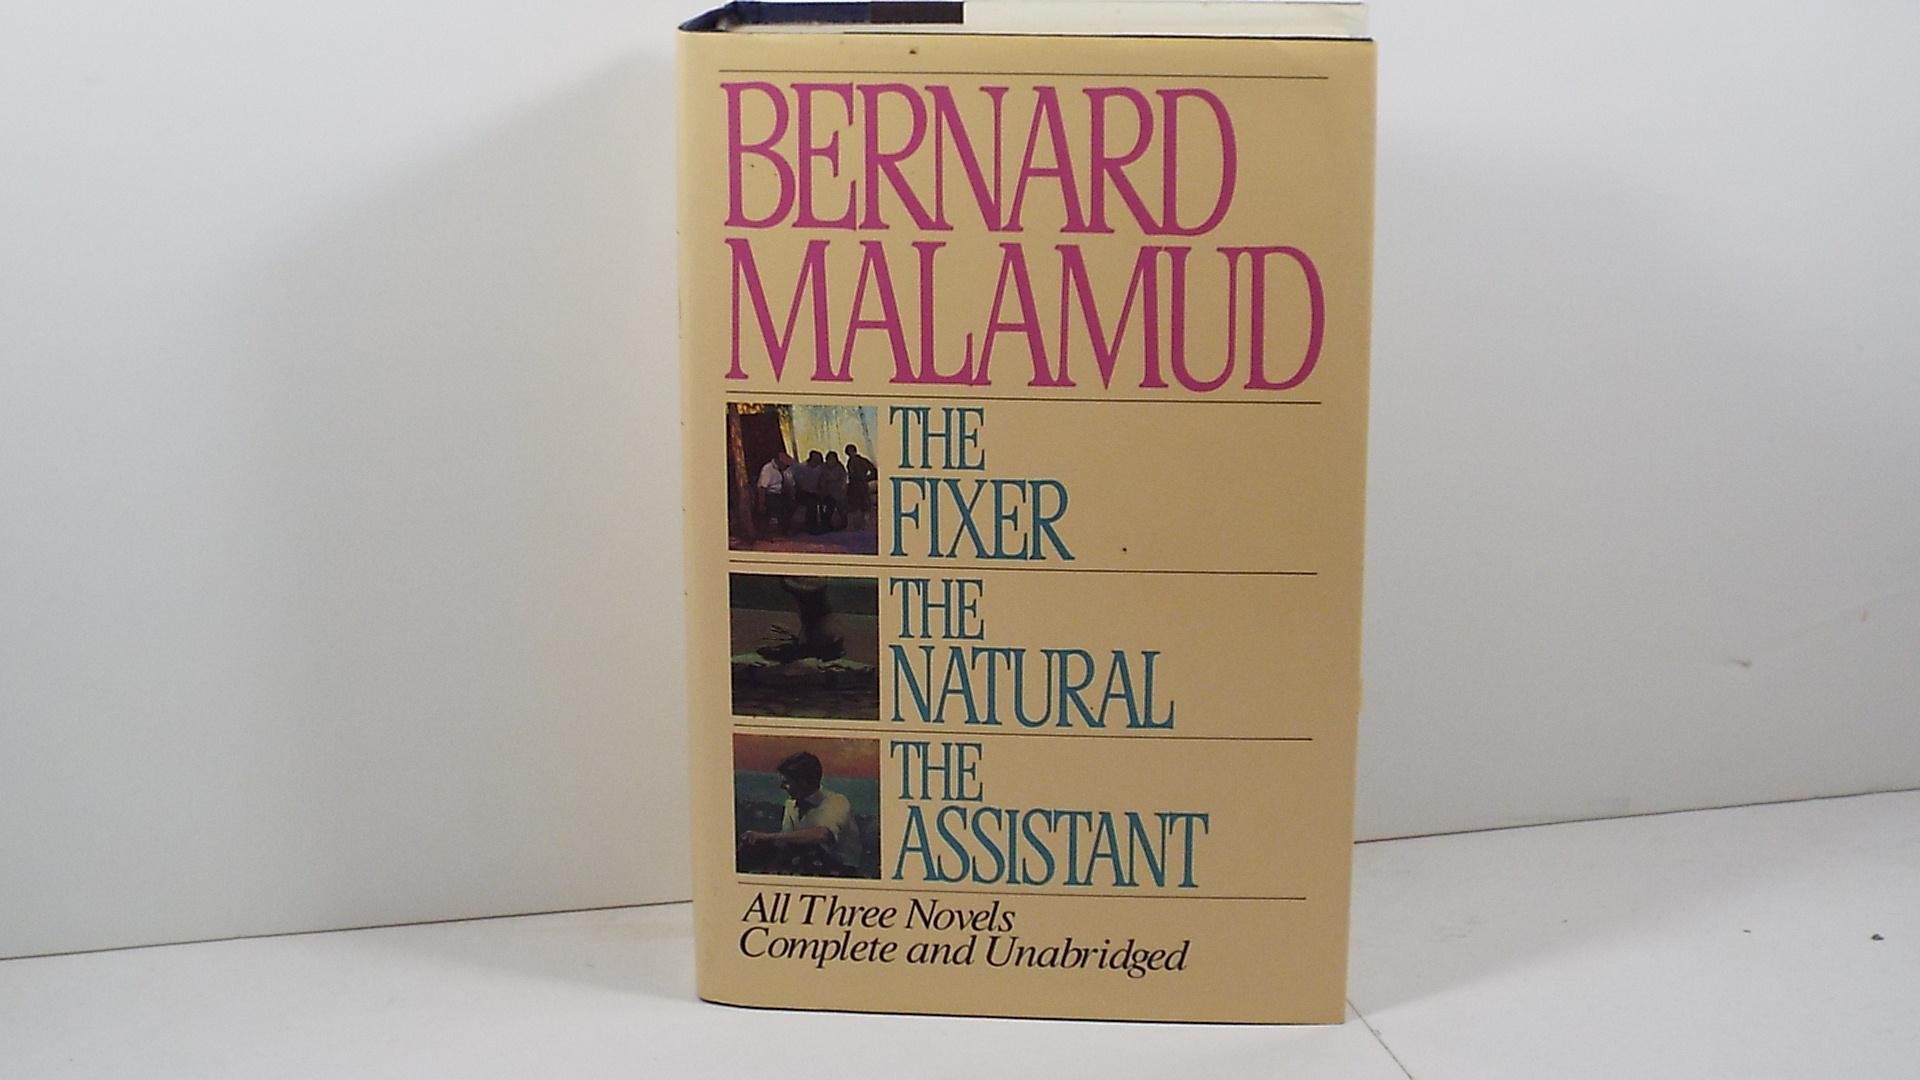 an overview of the novel the fixer by bernard malamud Bad title, great book: a review of bernard malamud's the fixer a review by dax-devlon ross.